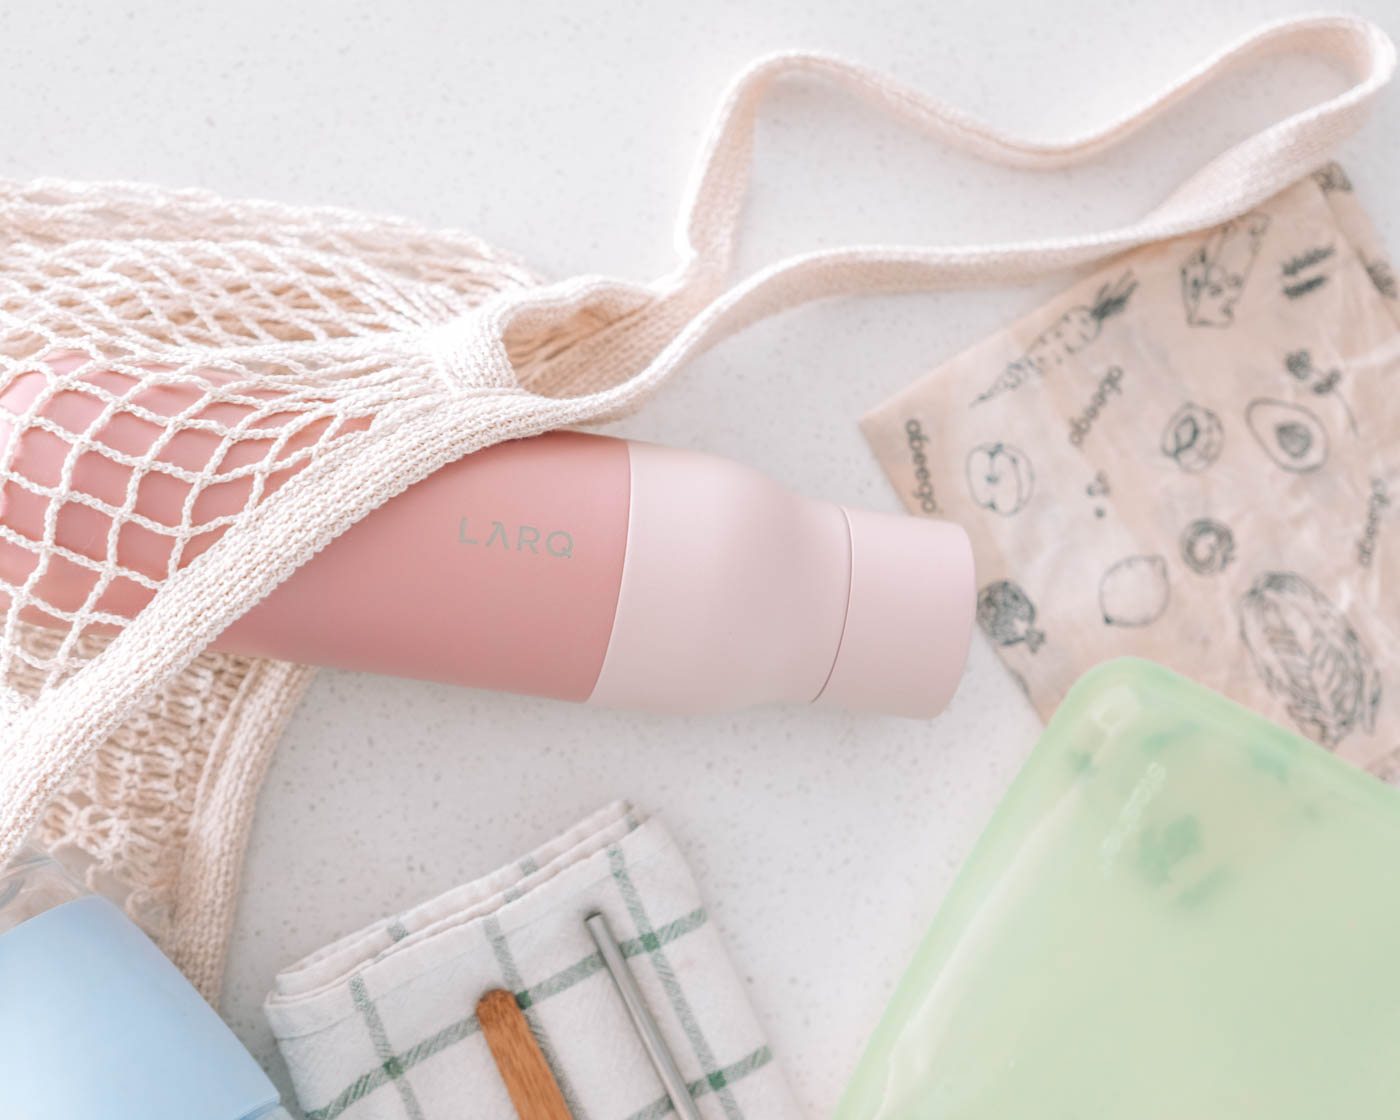 Plastic-Free essentials featuring the LARQ Bottle in Himalayan Pink and other reusable essentials